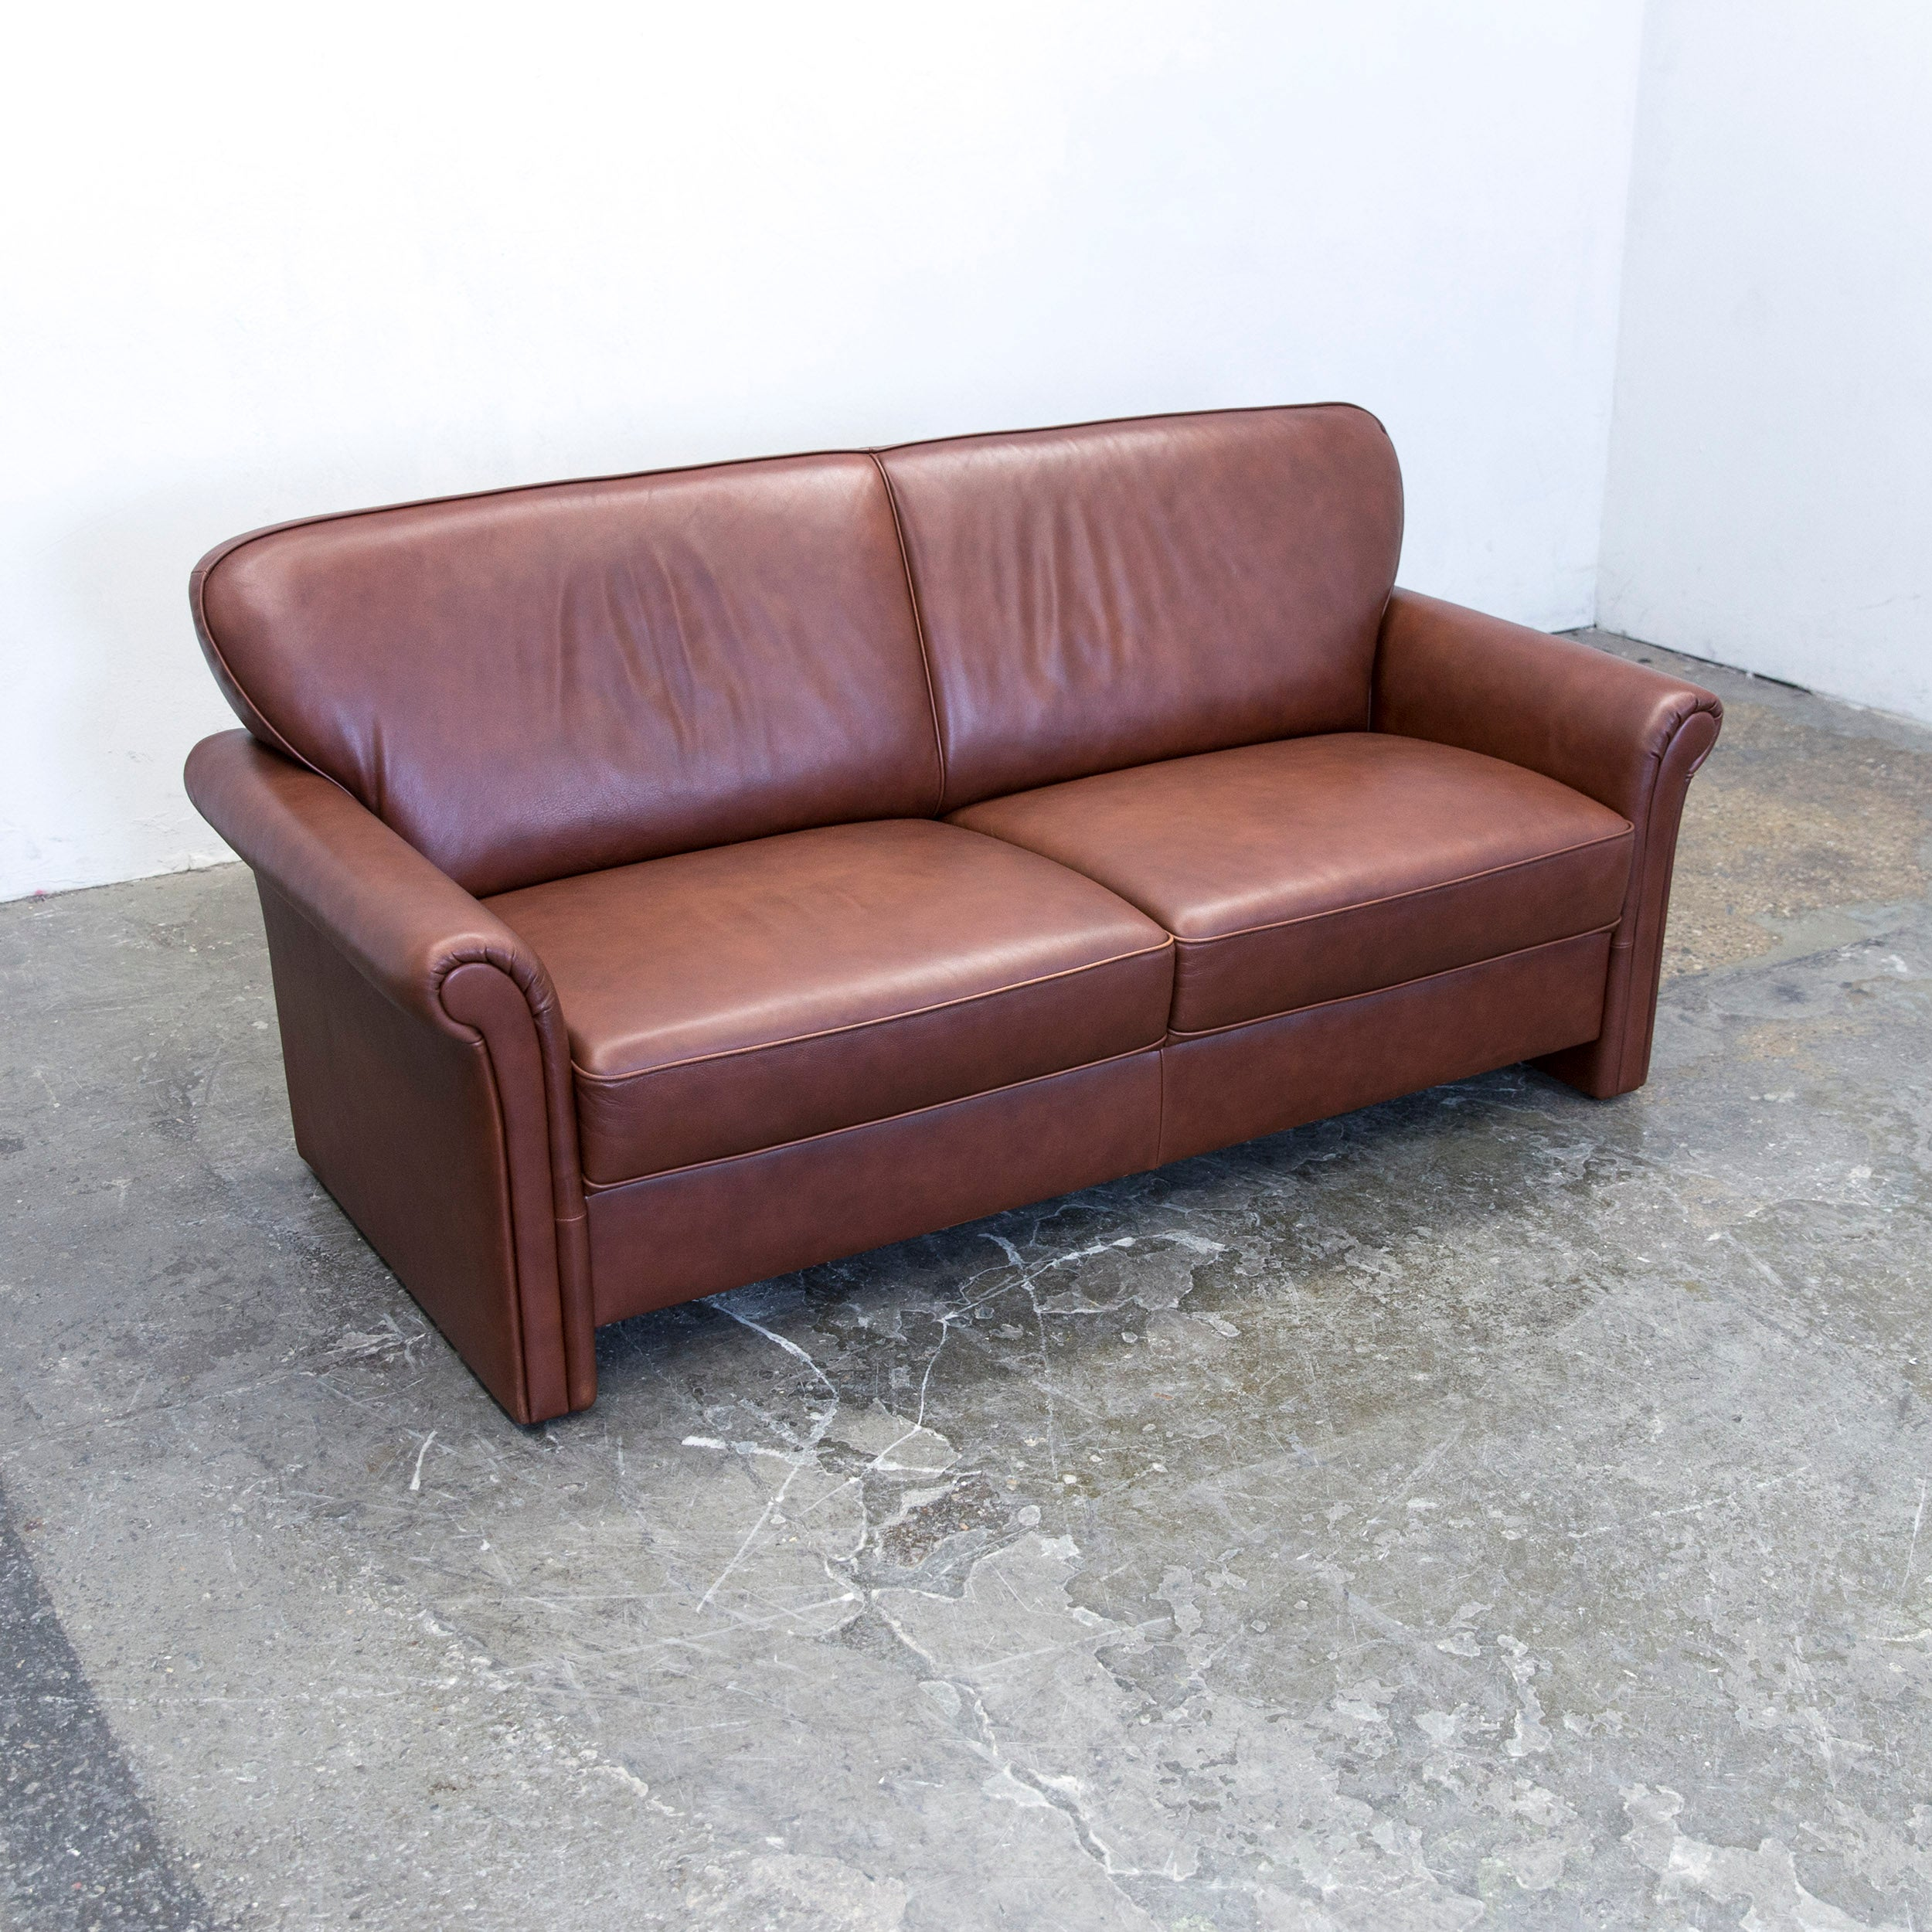 Designer Sofa Leder gepade akad or designer sofa leather brown two seat modern at